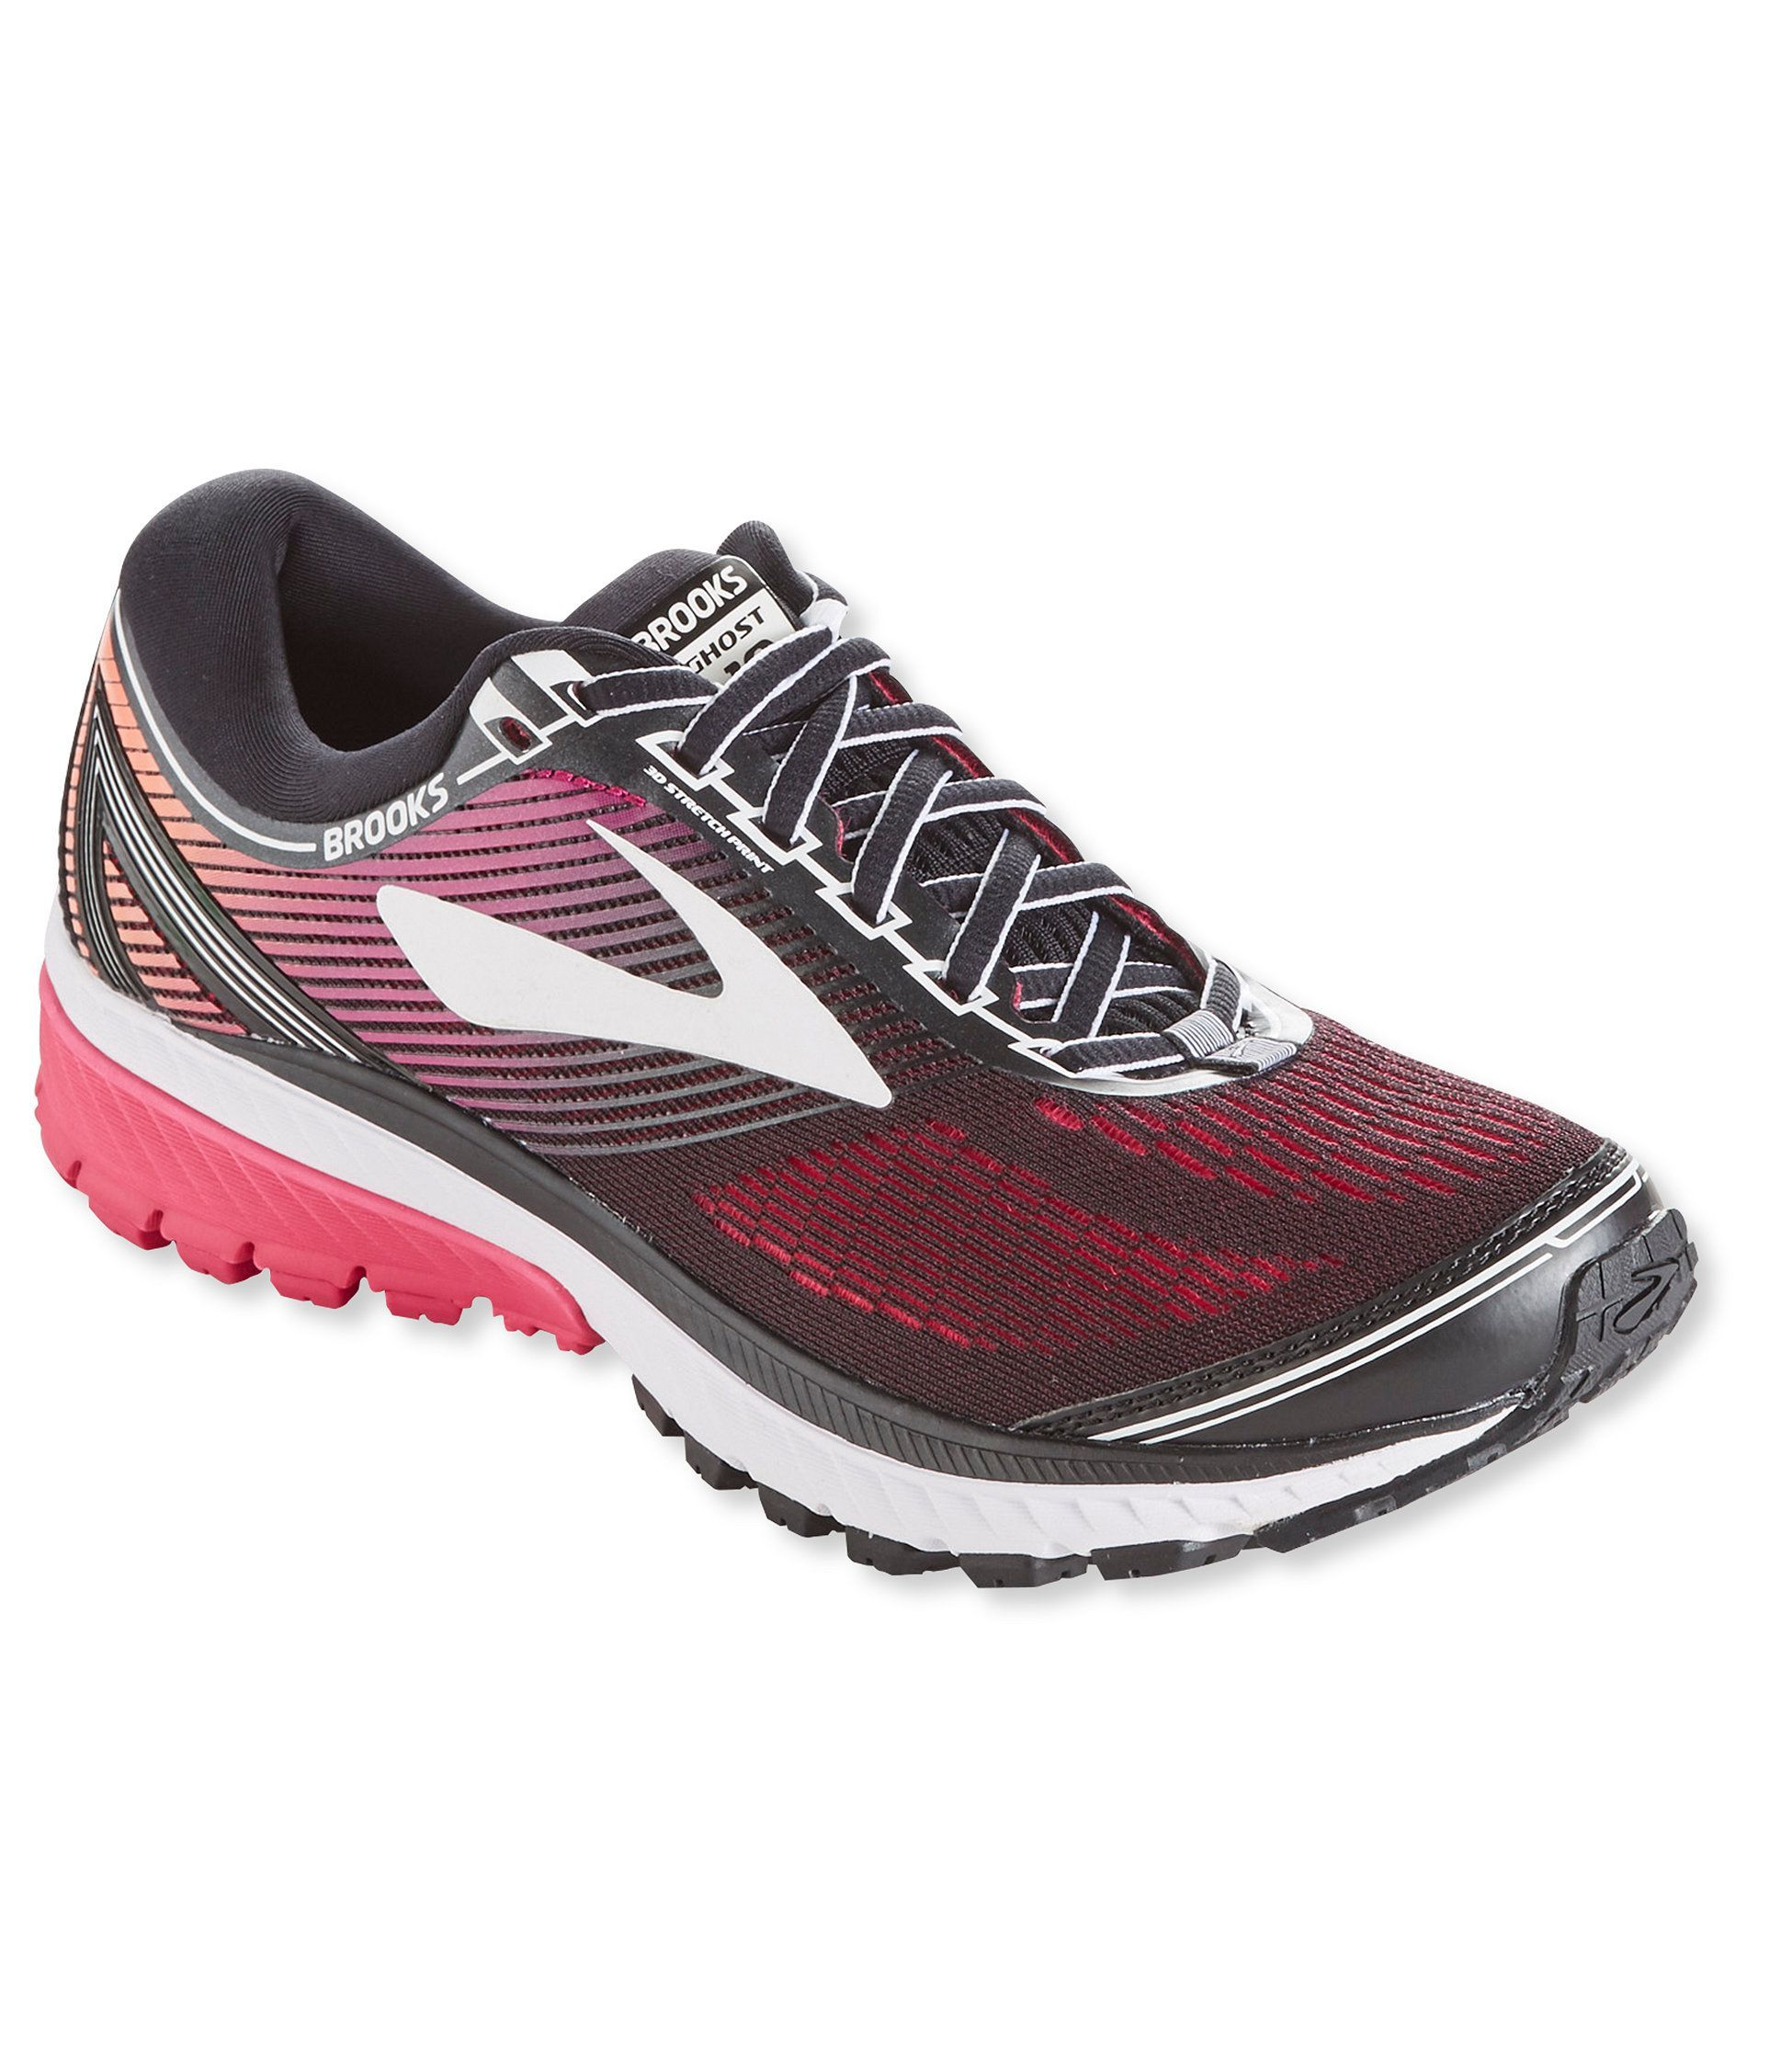 58e107d23643 Women's Brooks Ghost 10 Running Shoes | Products | Shoes, Running ...